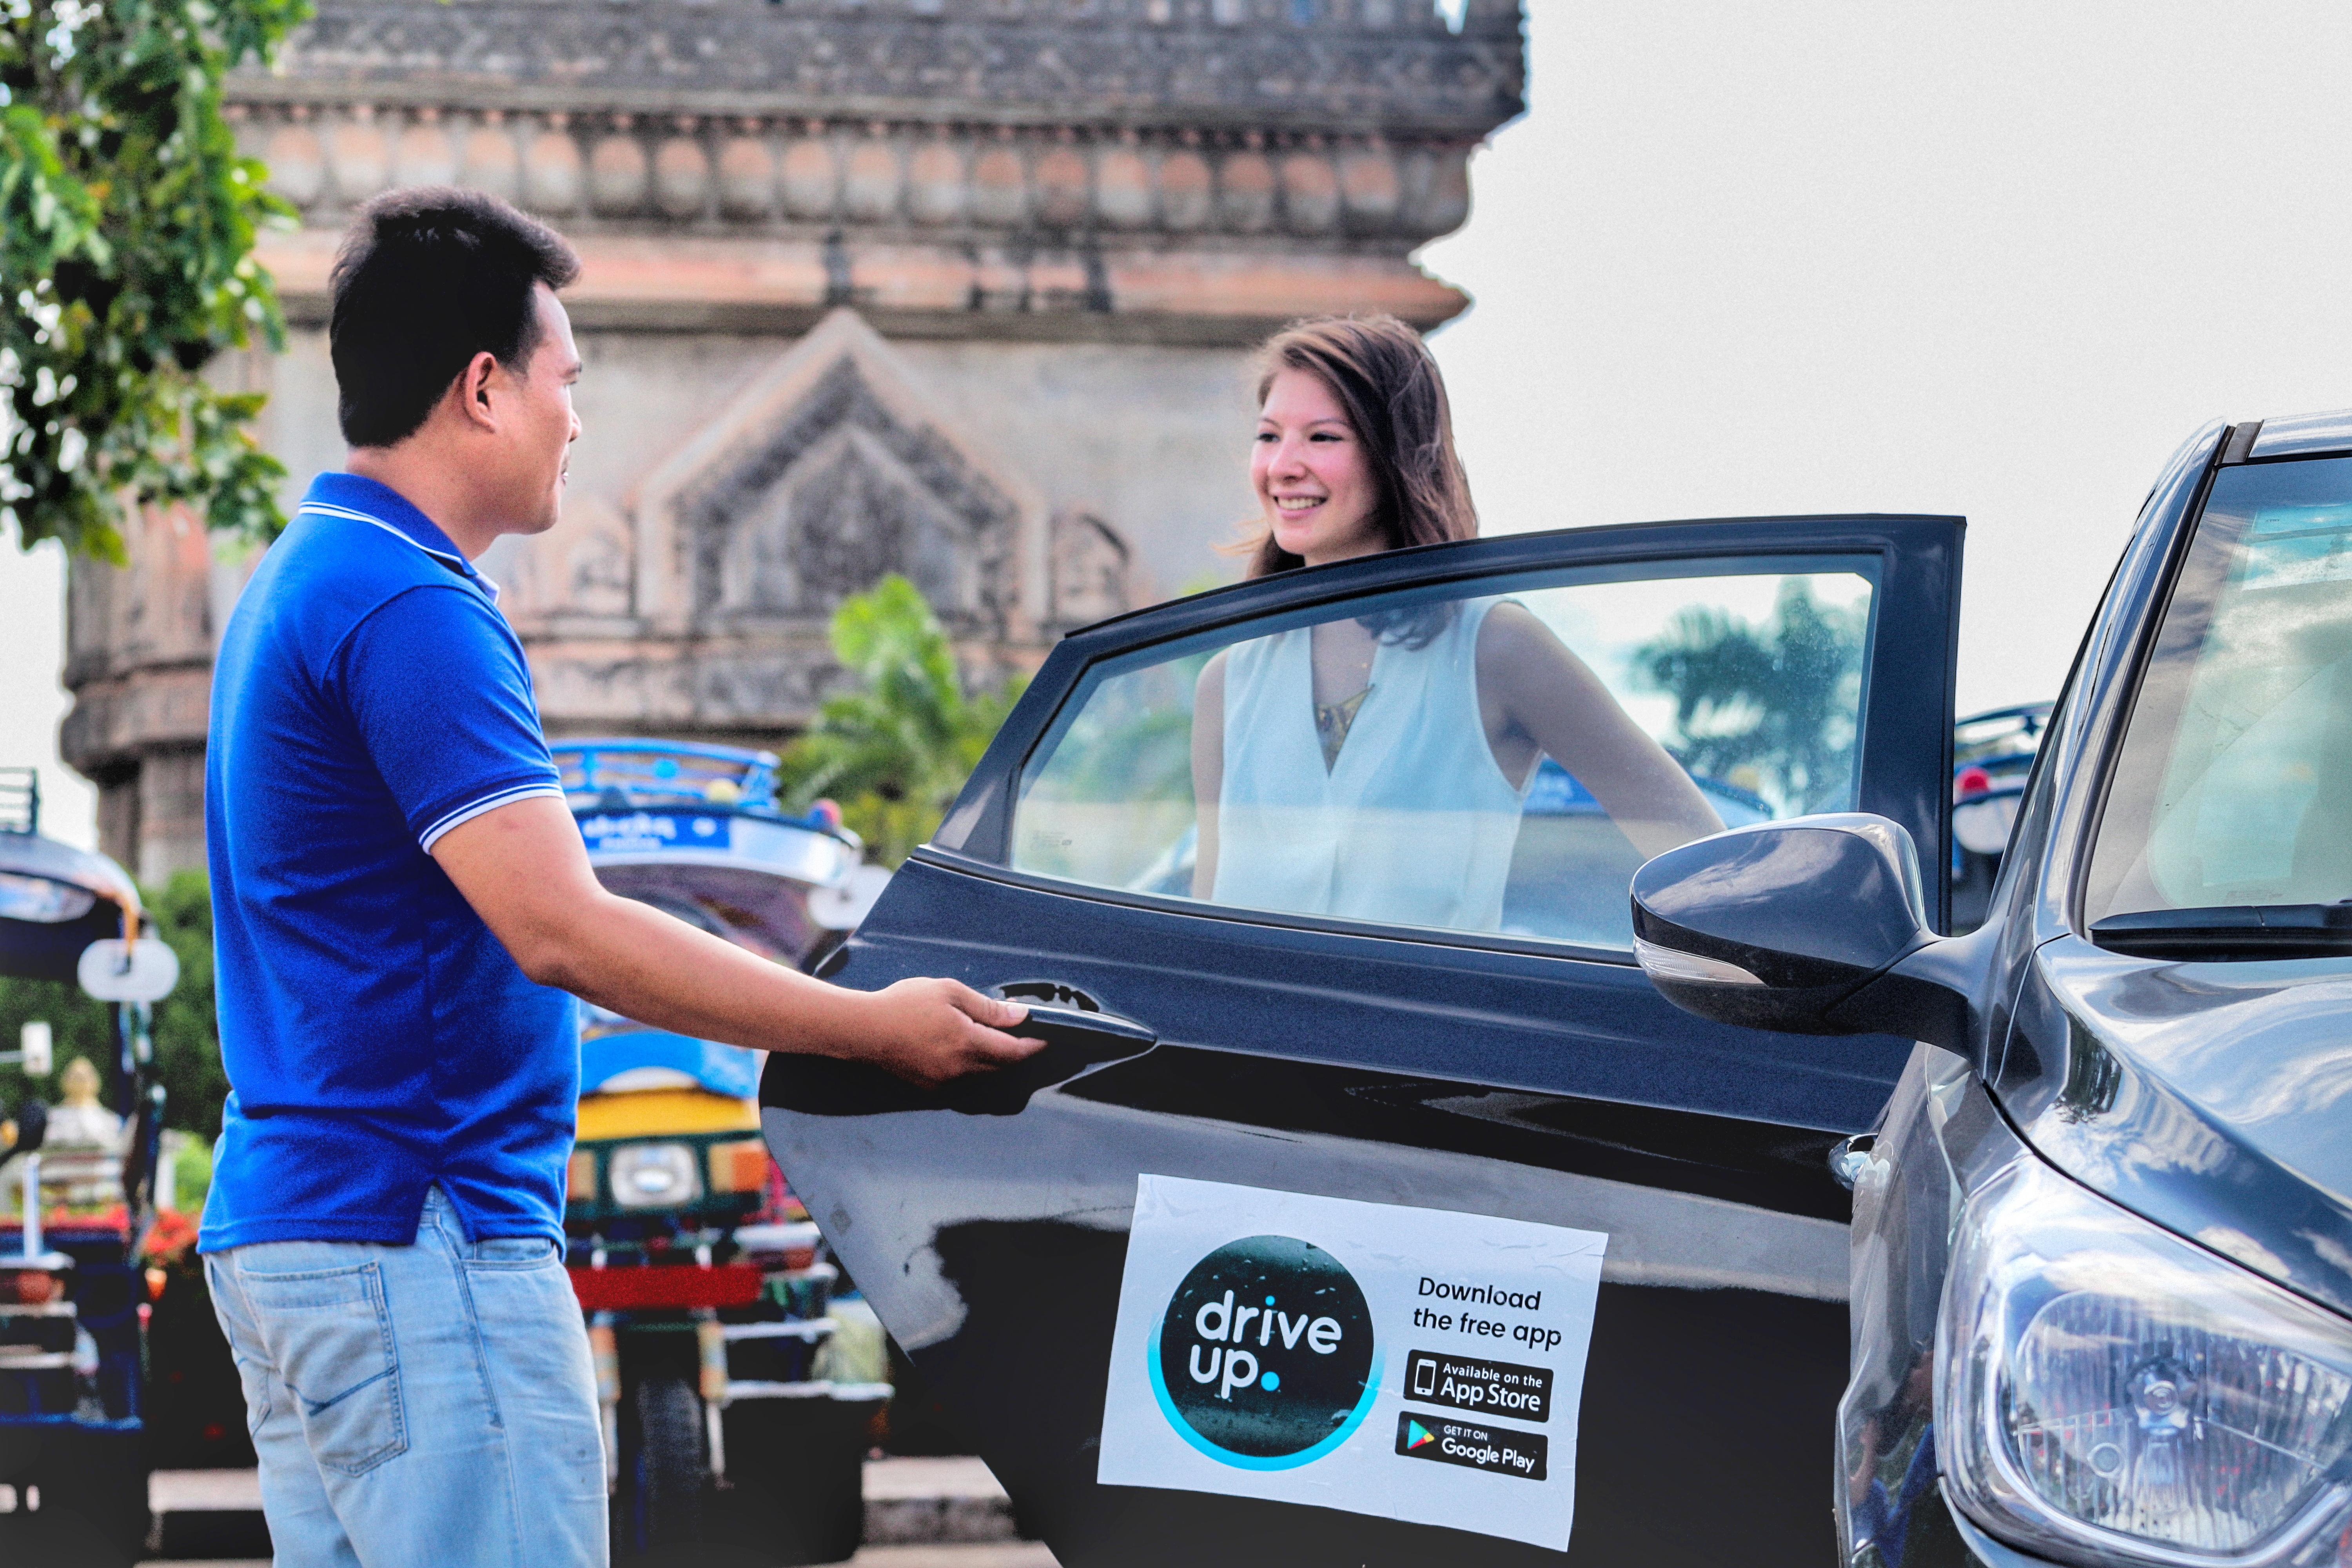 Cambodia's Meal Temple launches ride-hailing app in Laos